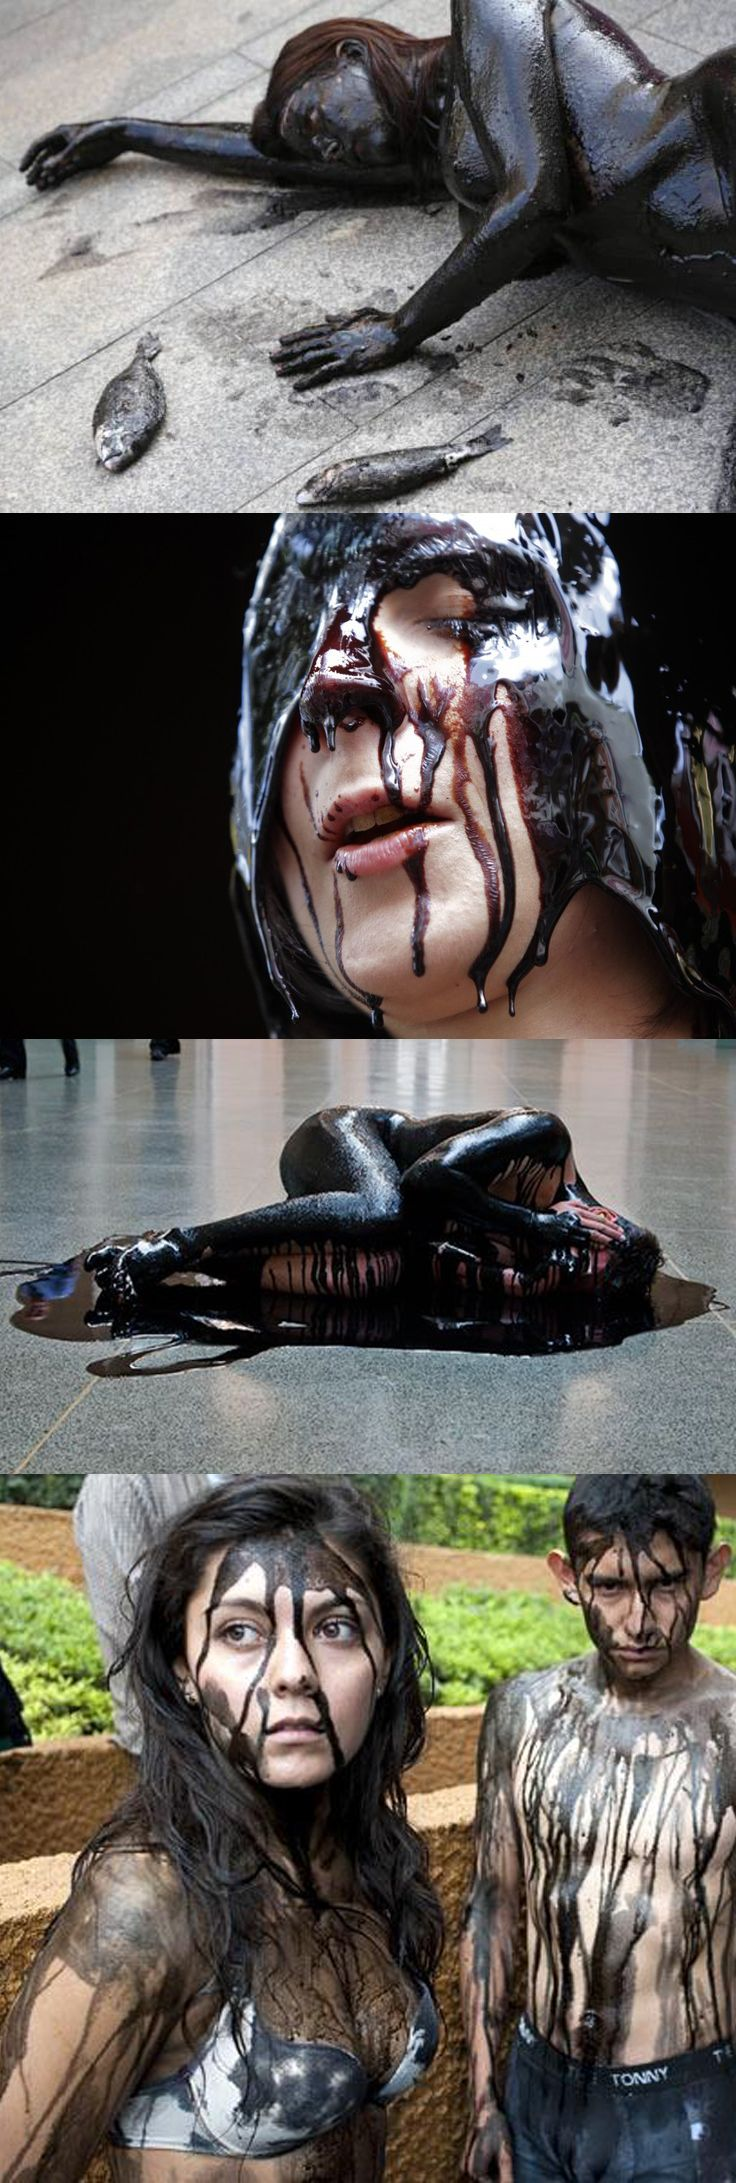 Activists protesting against oil spills, oil drilling and climate change can make a bold statement by using their bodies as a canvas, covered in fake oil, to remind people just how dirty crude oil really is. These were protests against Cairn Energy drilling in the Gulf of Valencia, BP funding of Tate Museum, and Canadian tar sands oil in Europe.